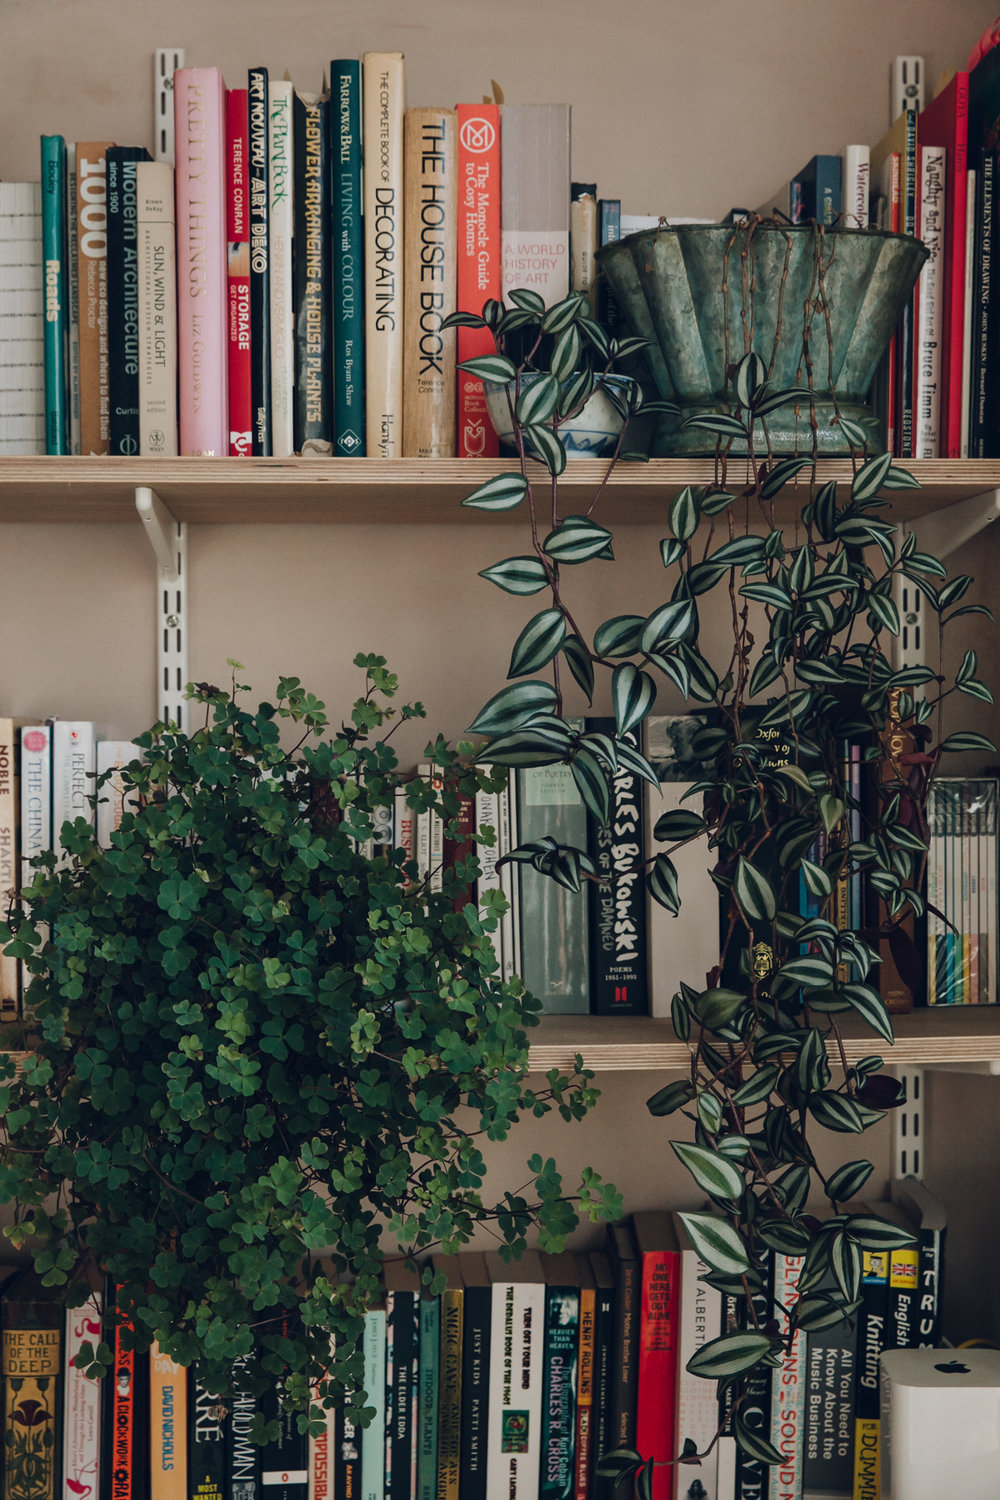 Plants and books.